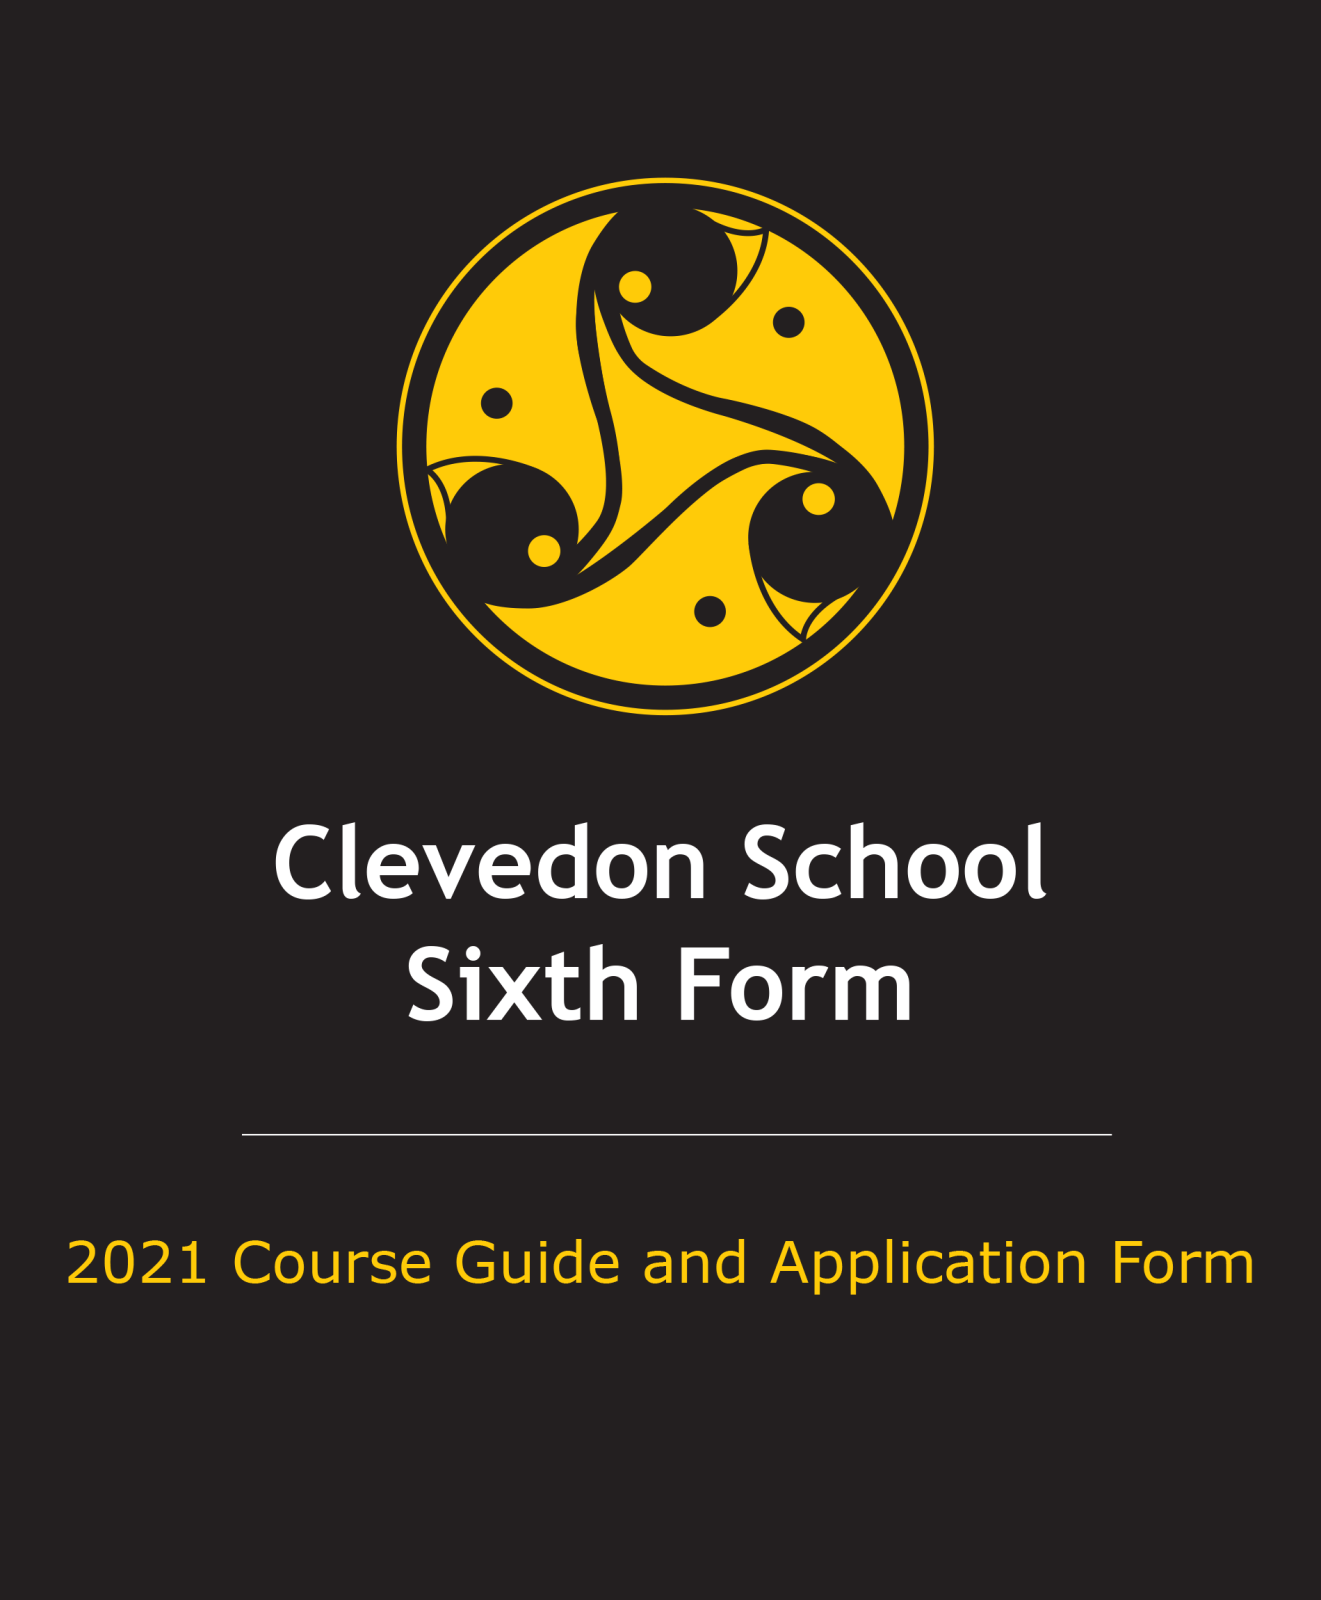 Clevedon School Sixth Form Application Guide